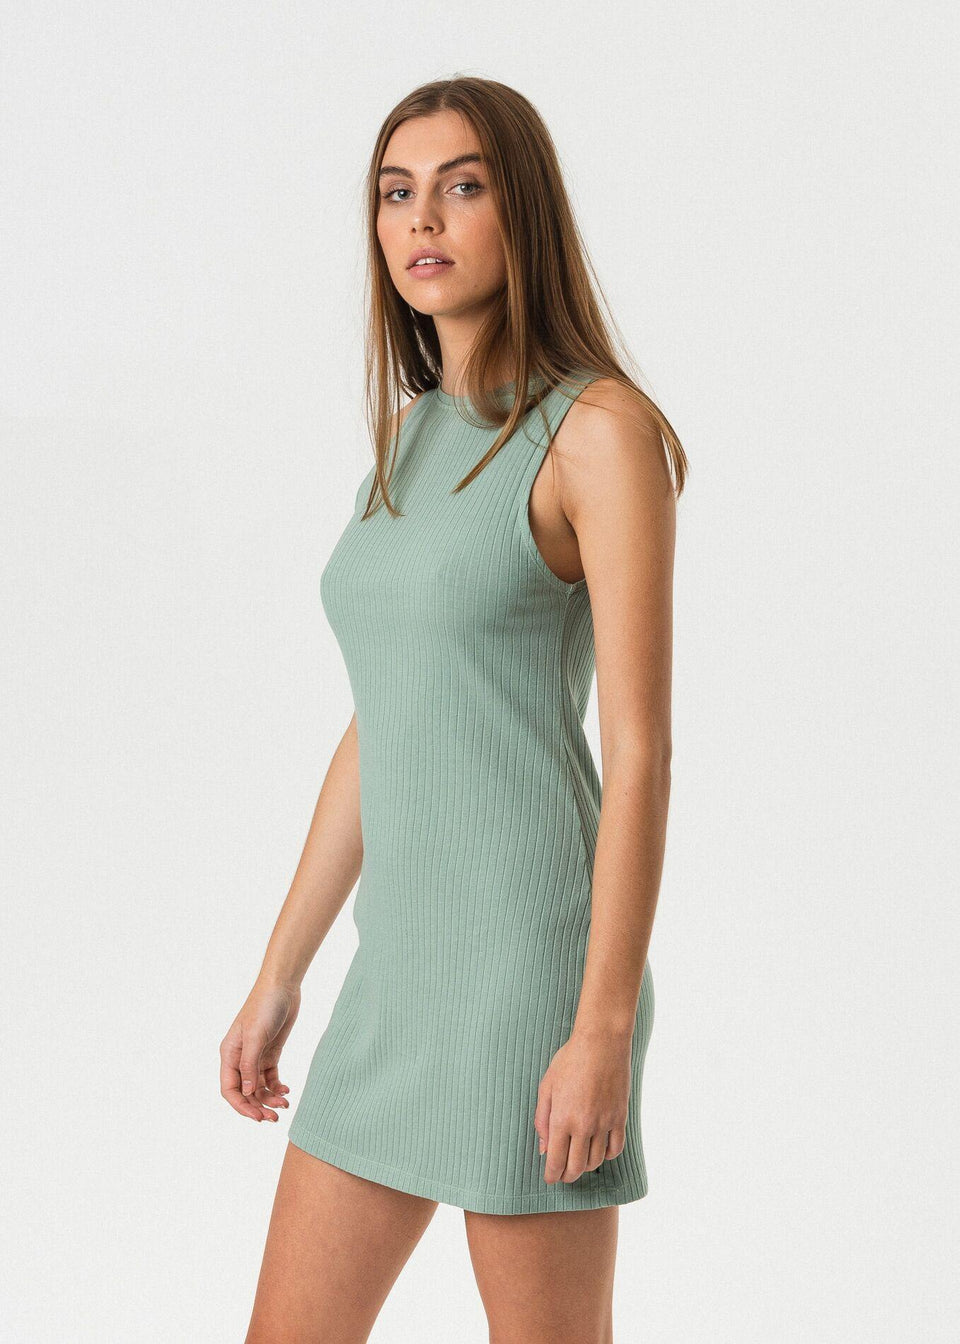 Daisy Close Fit Jersey Dress - Saint Street